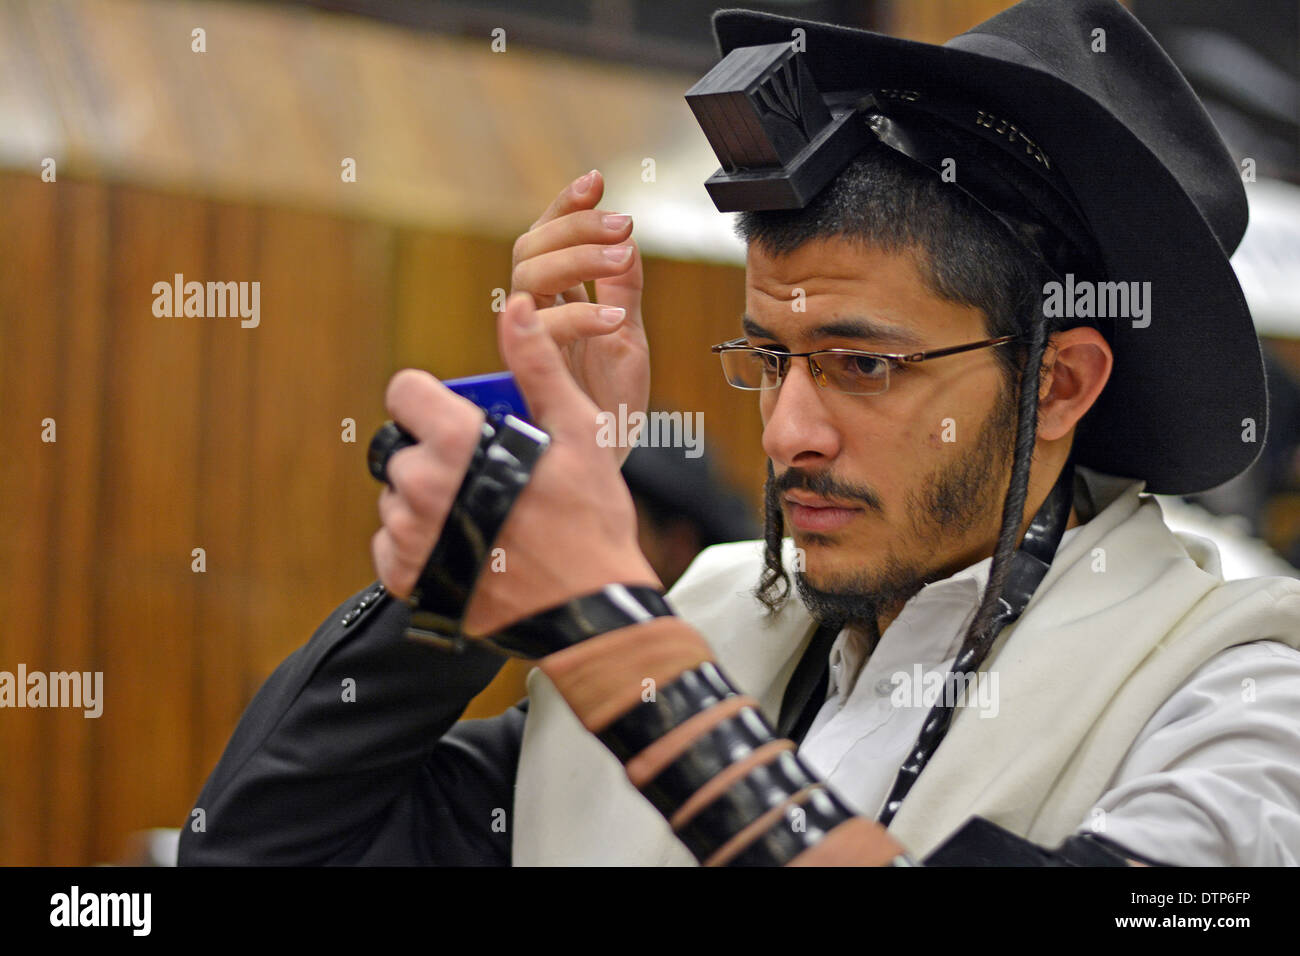 Using a small mirror a religious Jew adjusting his phylacteries at morning prayers at Lubavitch headquarters in Brooklyn - Stock Image